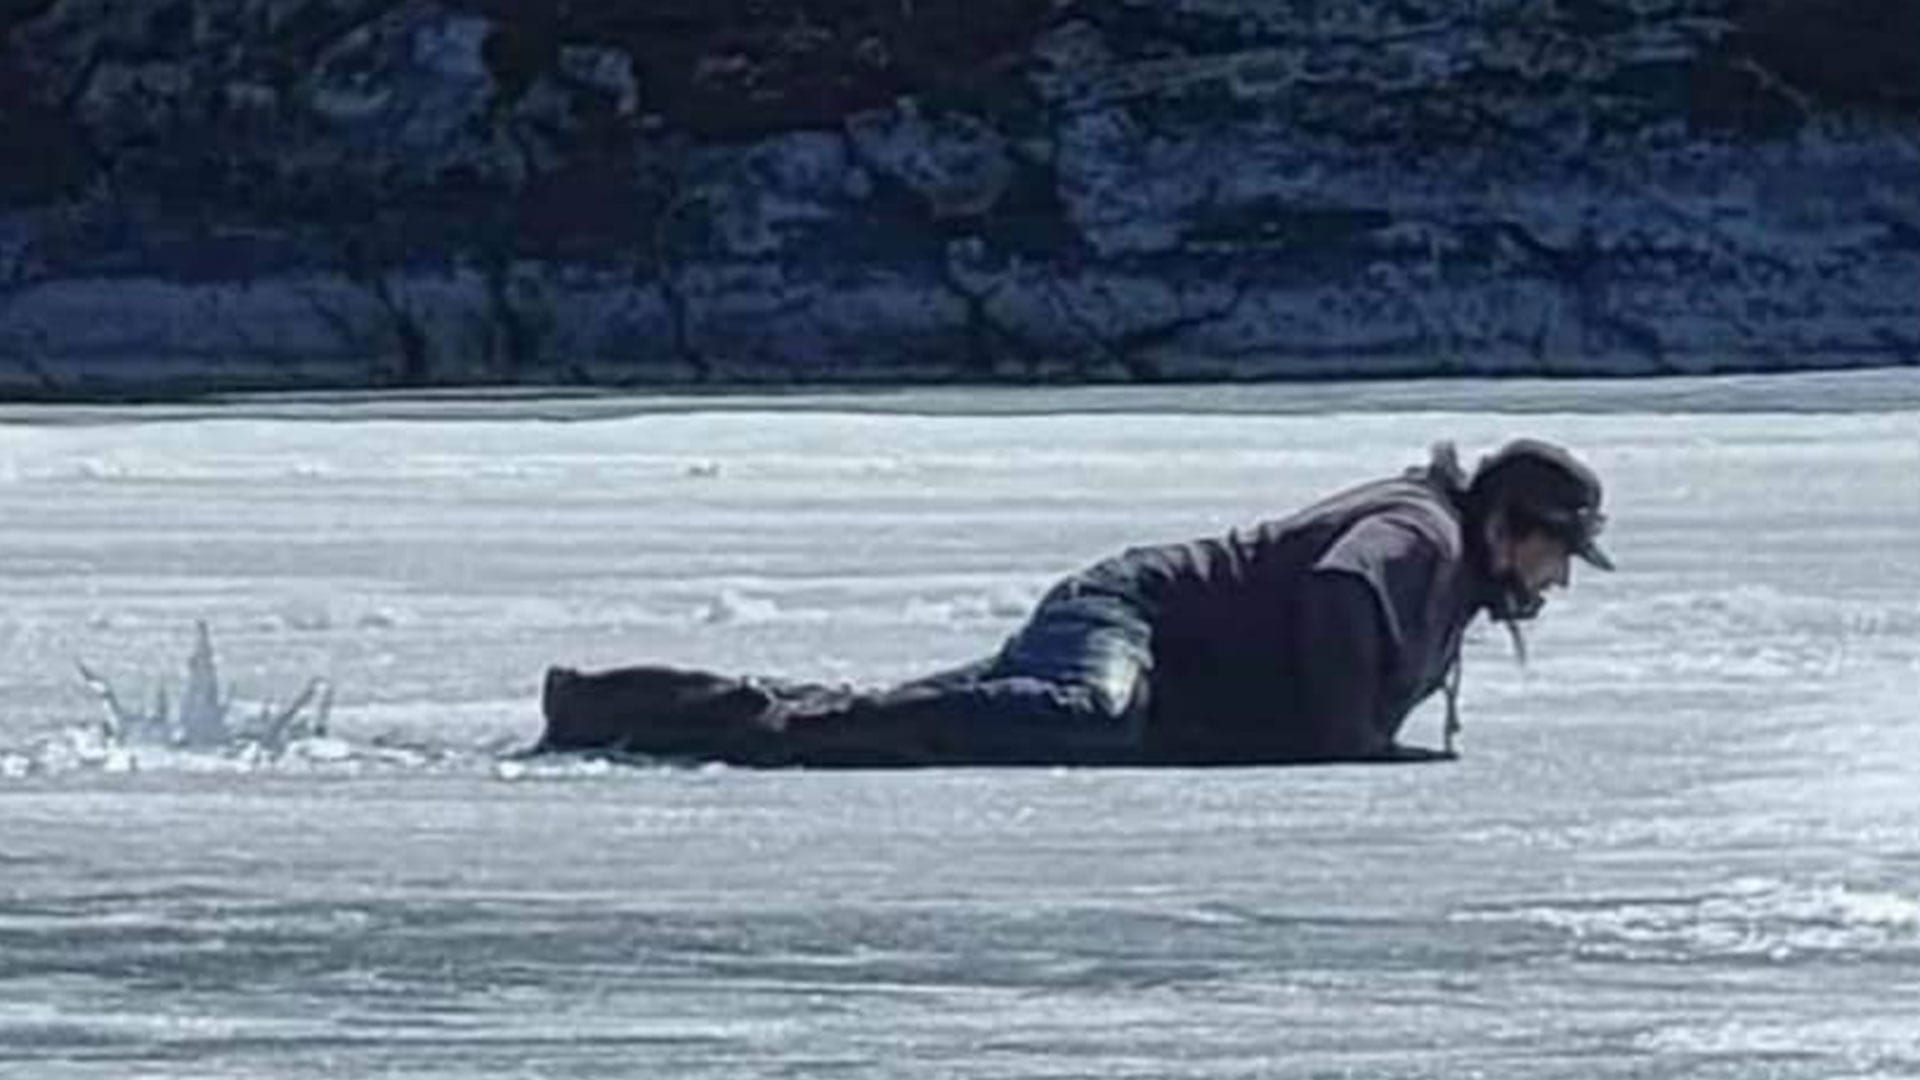 Wasagamack First Nation calls for new store after people fall through ice